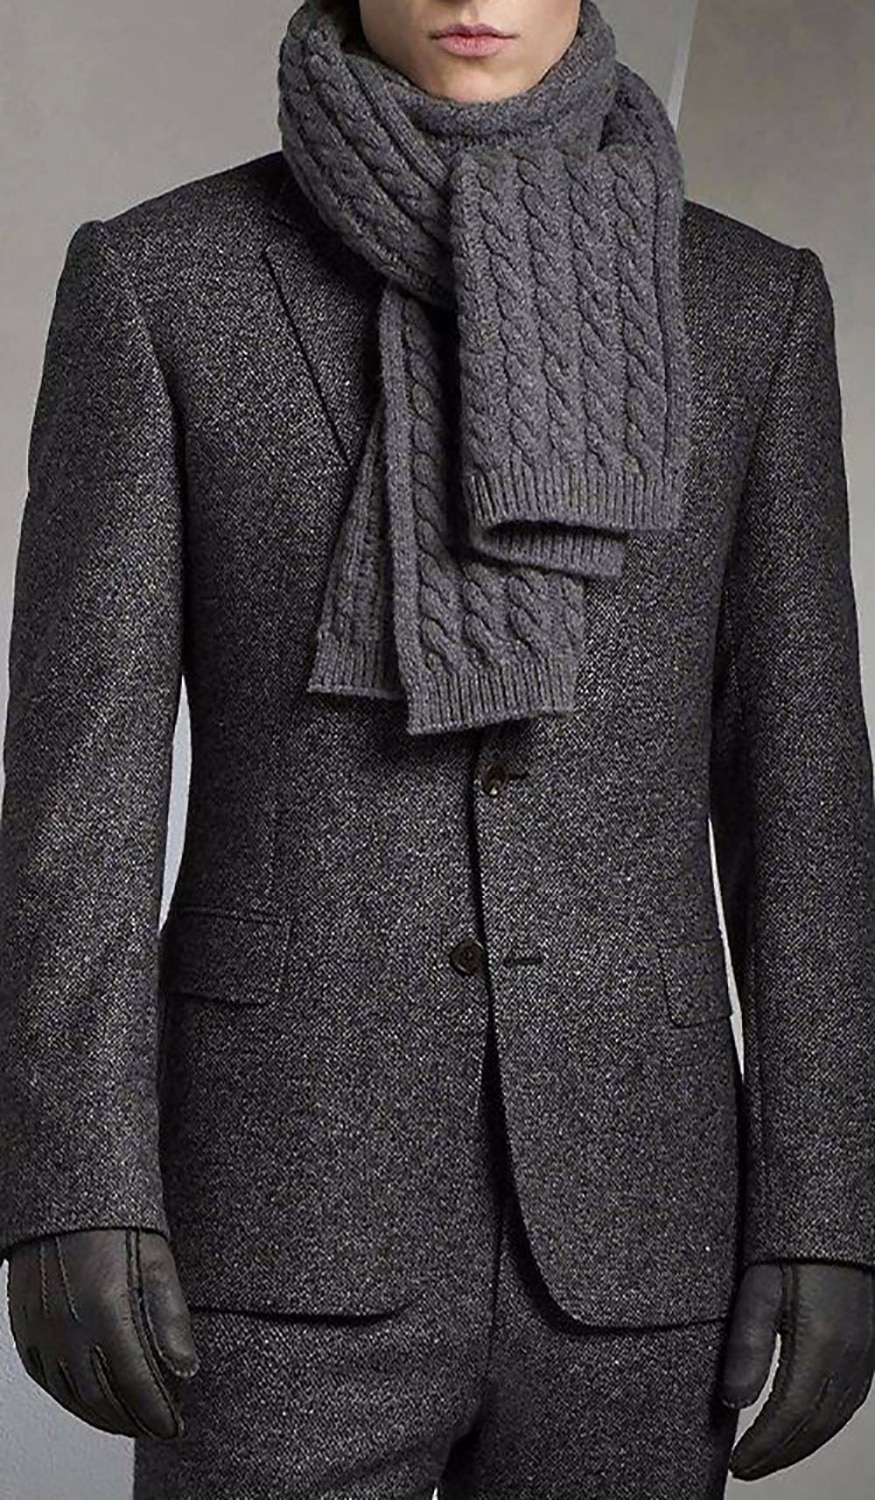 Charcoal Grey Brushed Wool Blend Suits For Winter Tailored Fit Warm Suits For Winter,Custom Made Heavy Wool Blend Suits For Men